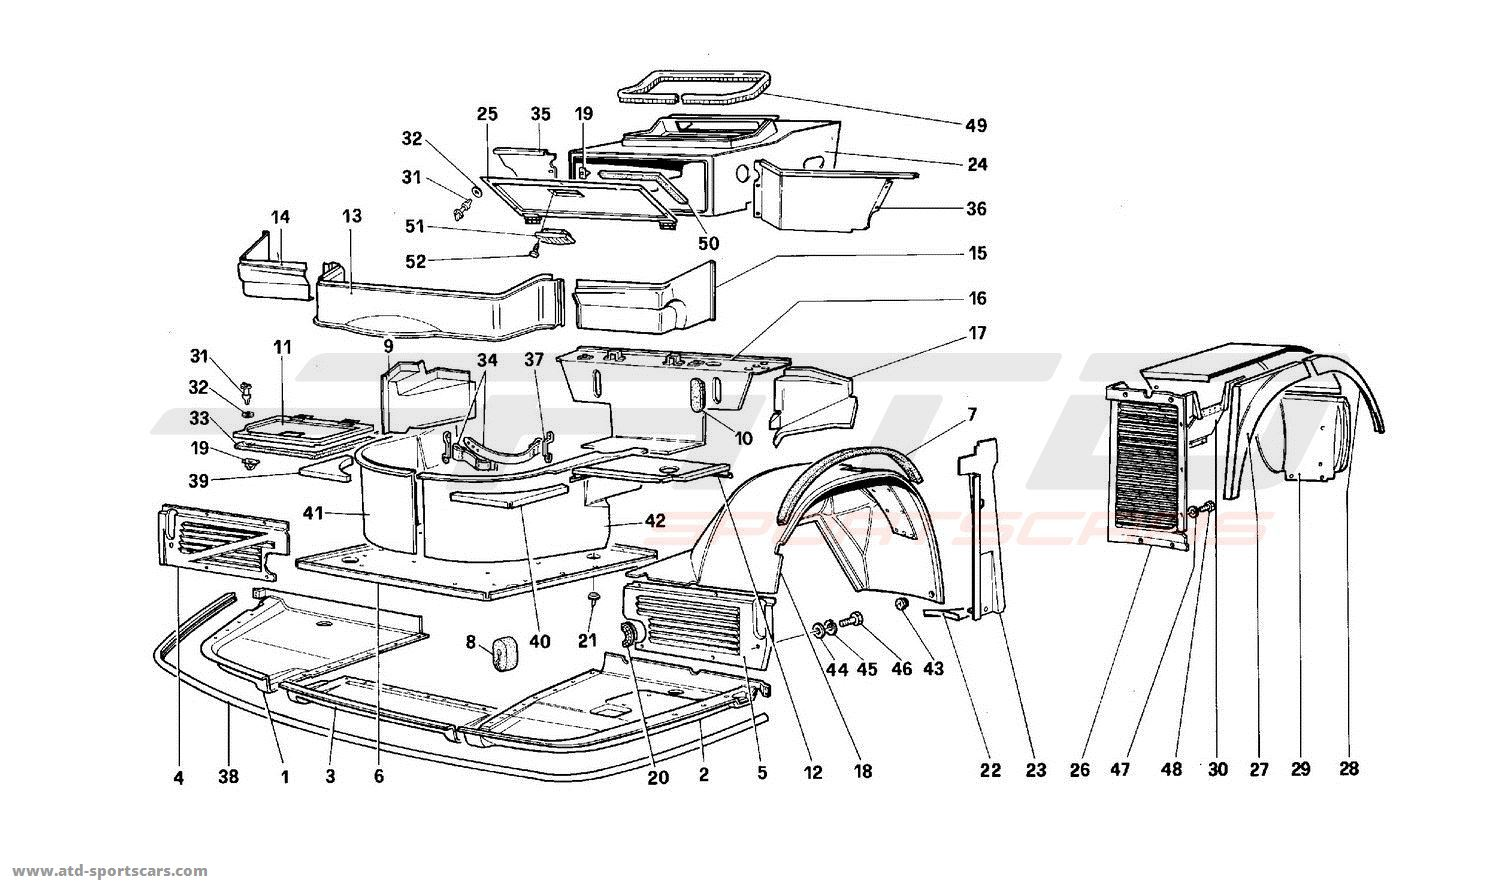 Ferrari 512 TR Structural frames parts at ATD-Sportscars